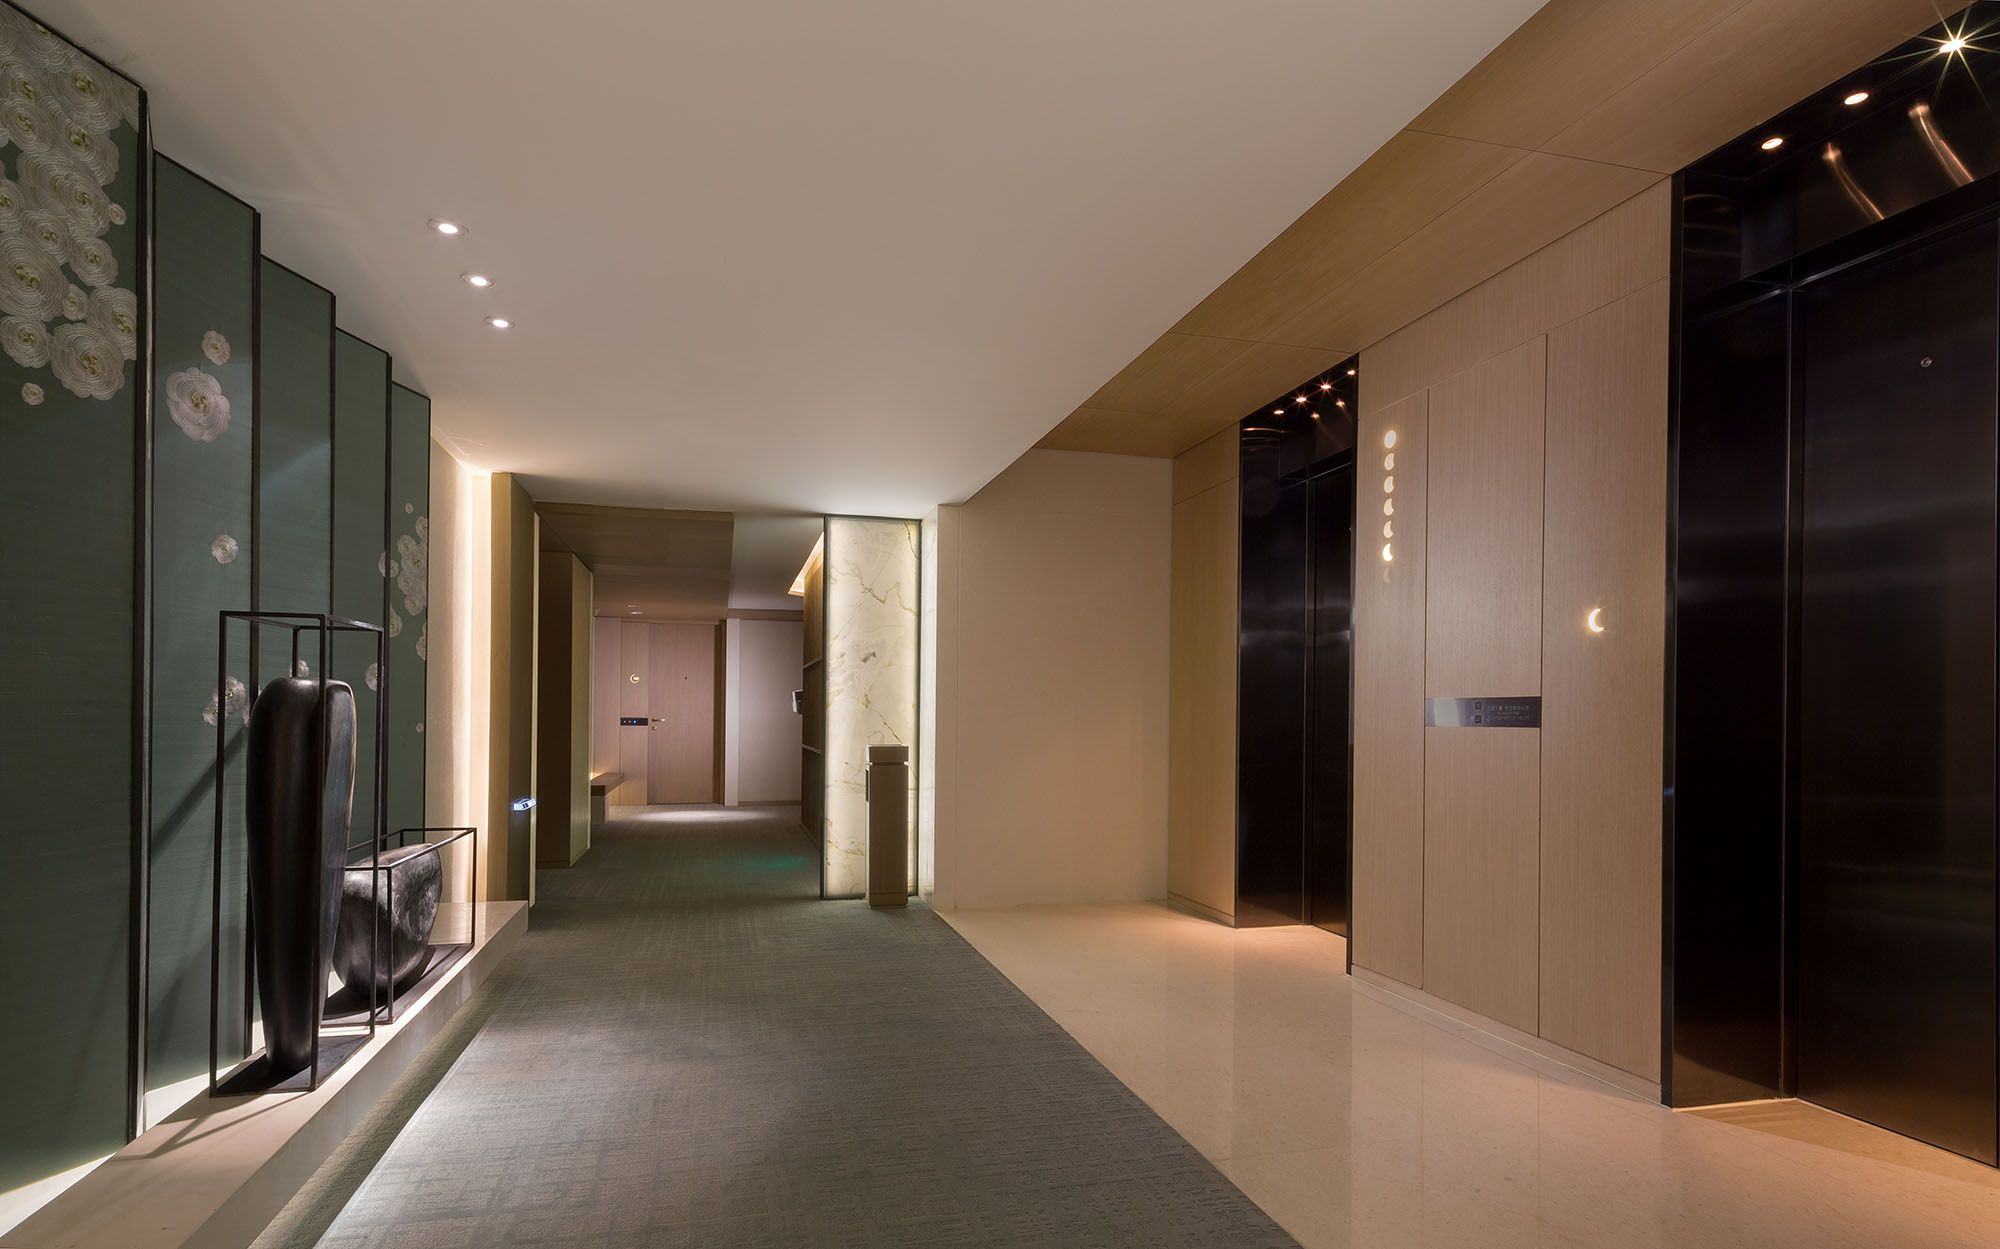 east design hotel the east hotel in hangzhou design by andy zon c